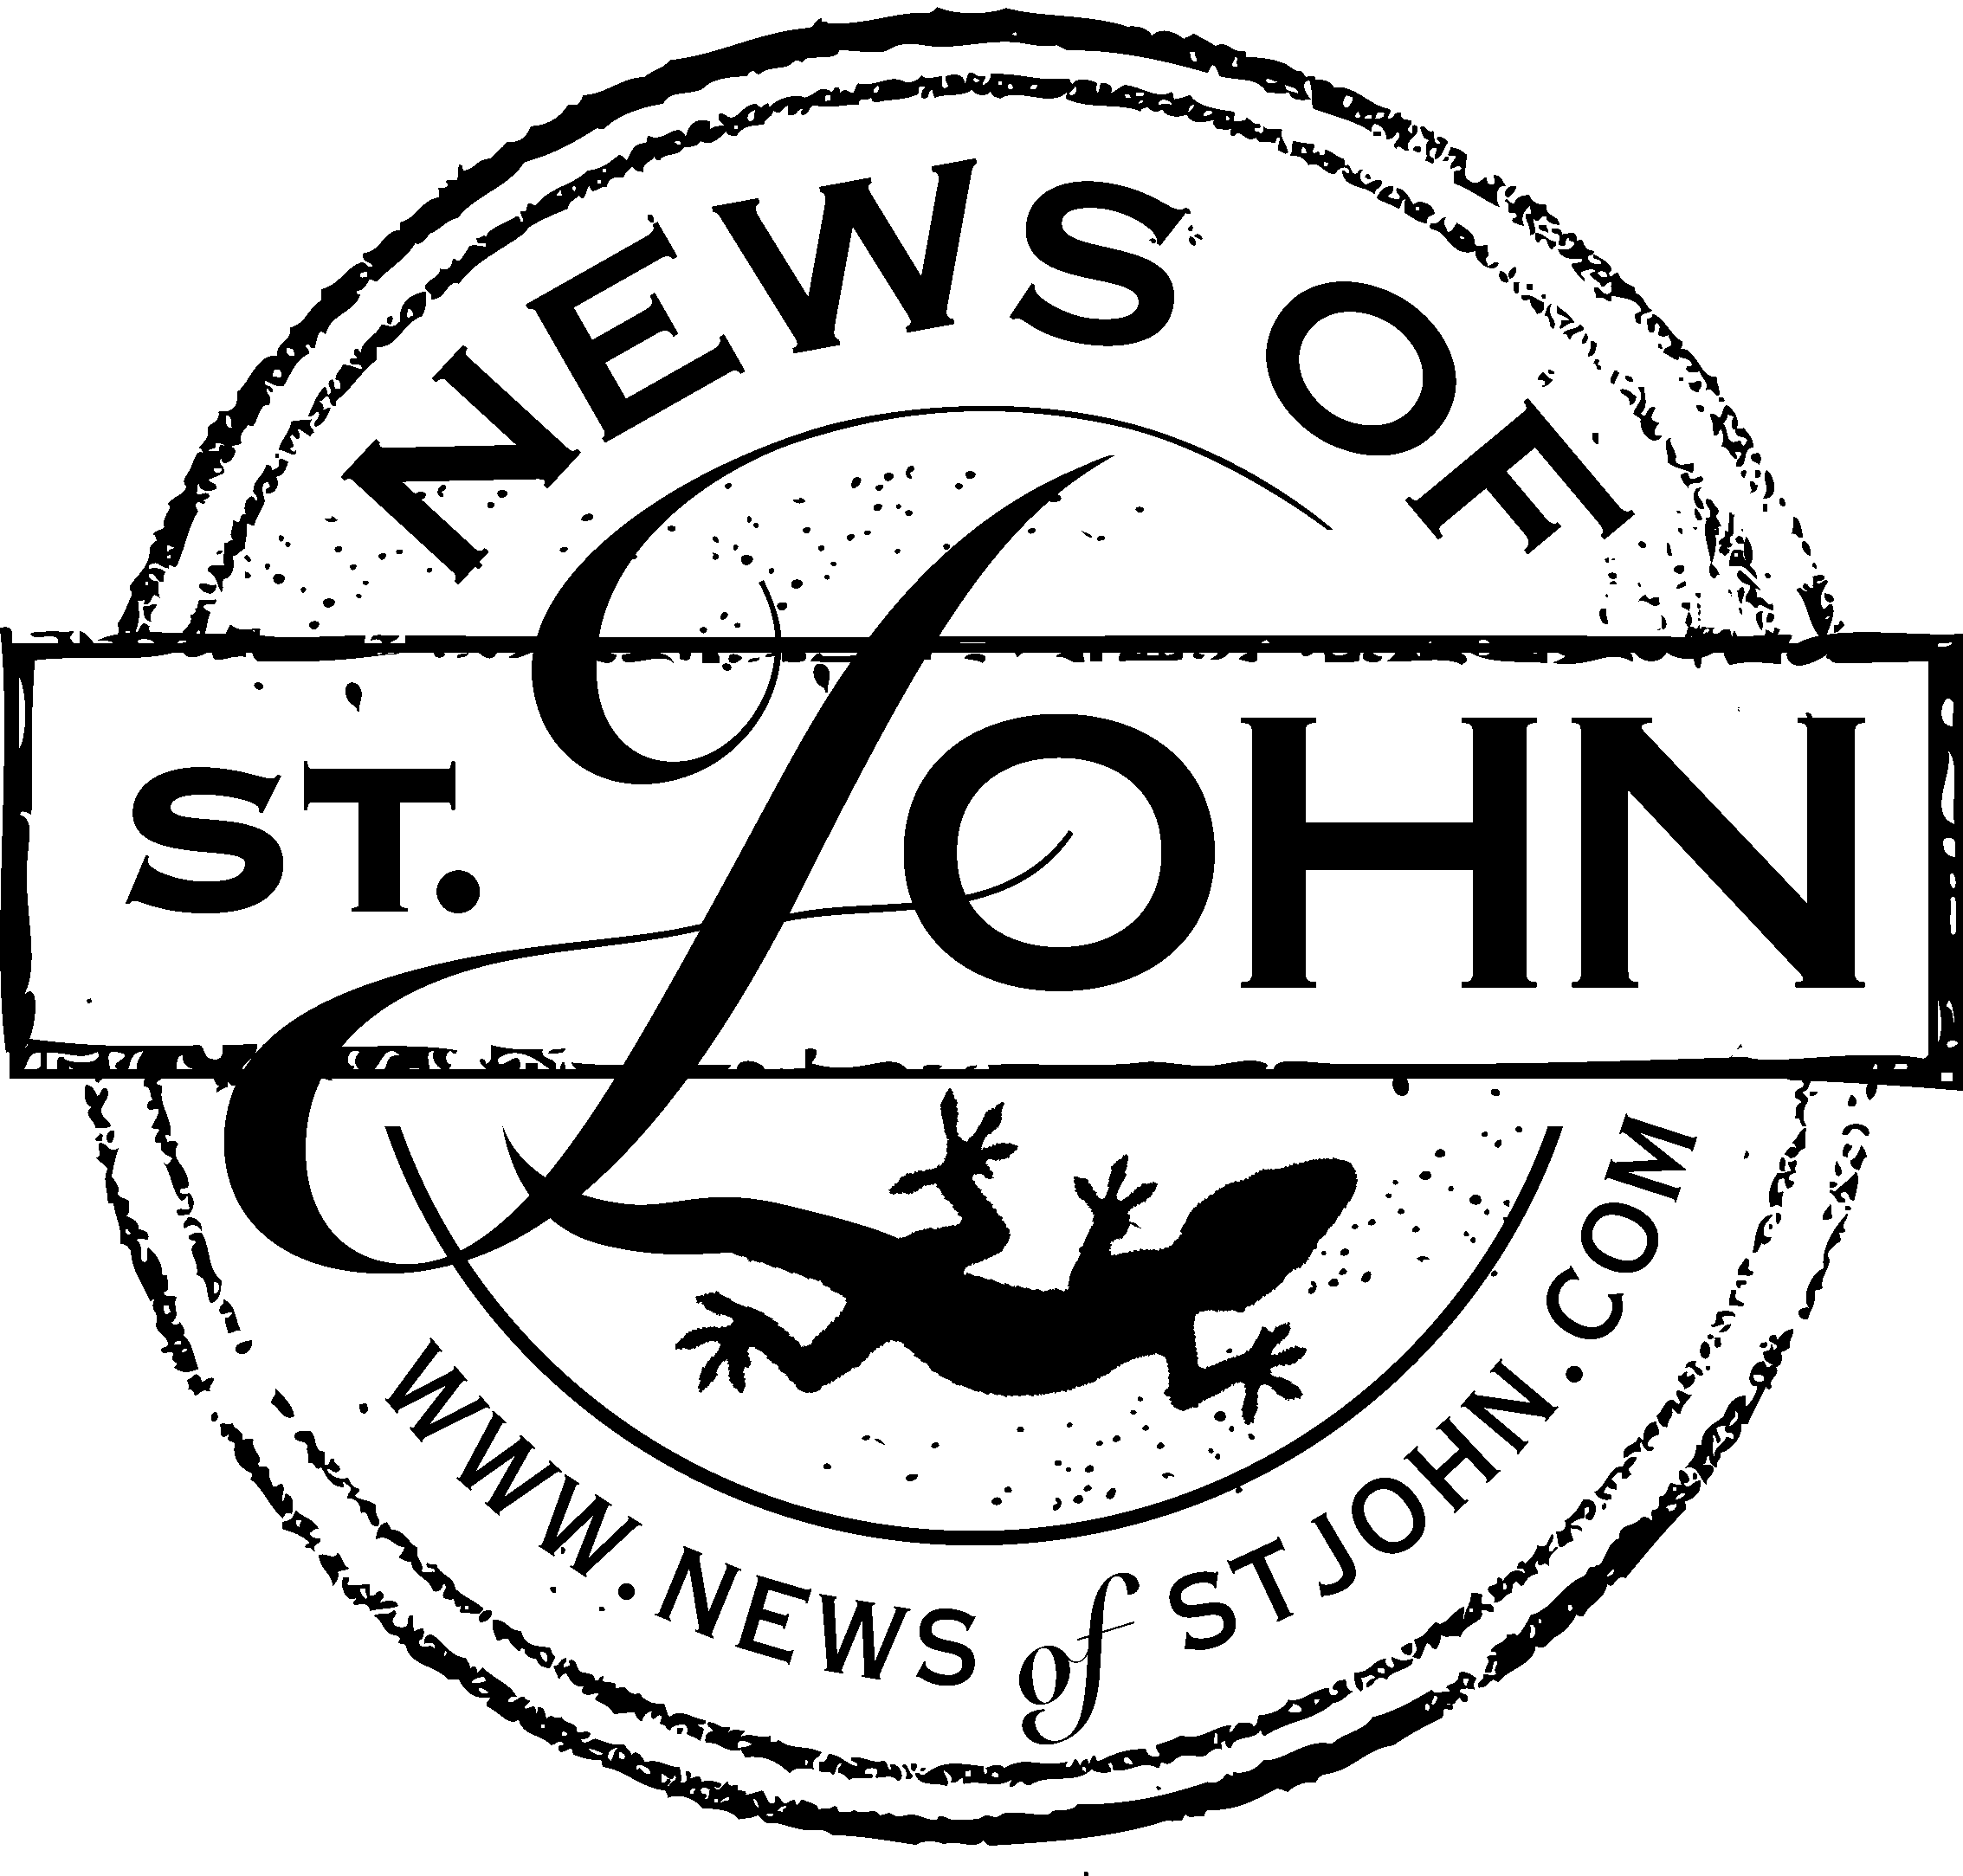 News of St. John